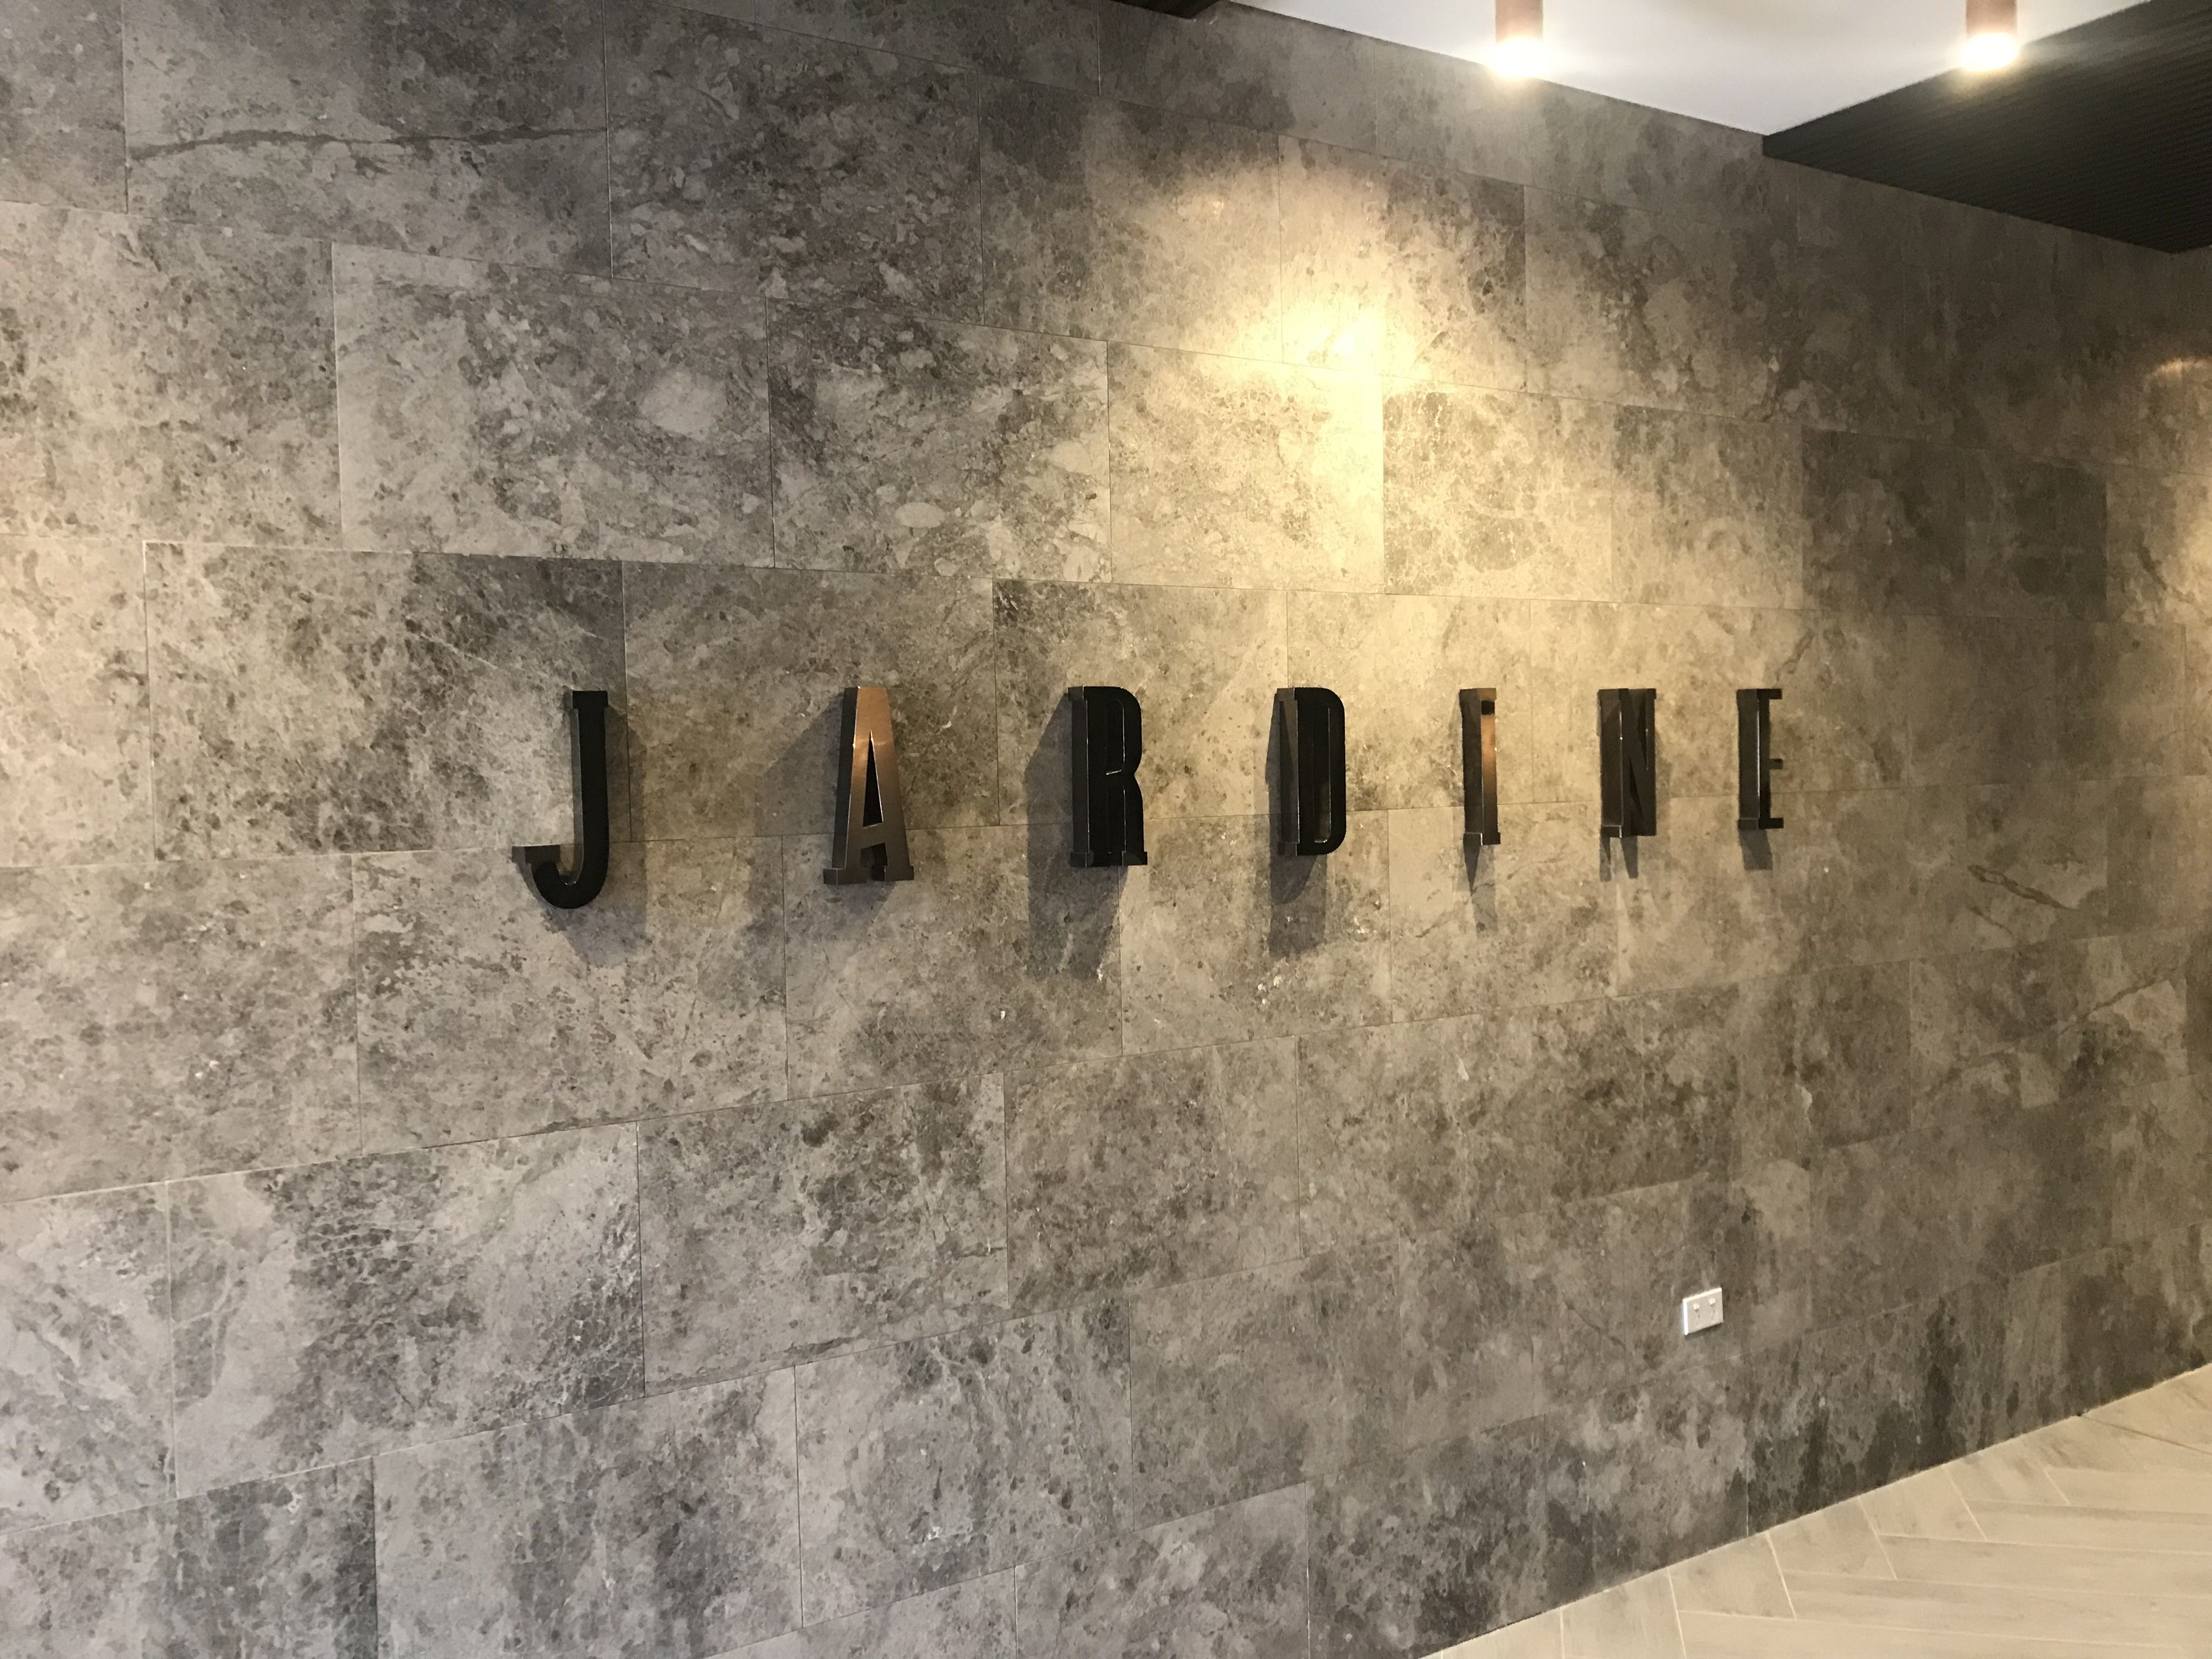 Jardine Residences - Epping - One bedroom with parking and storage